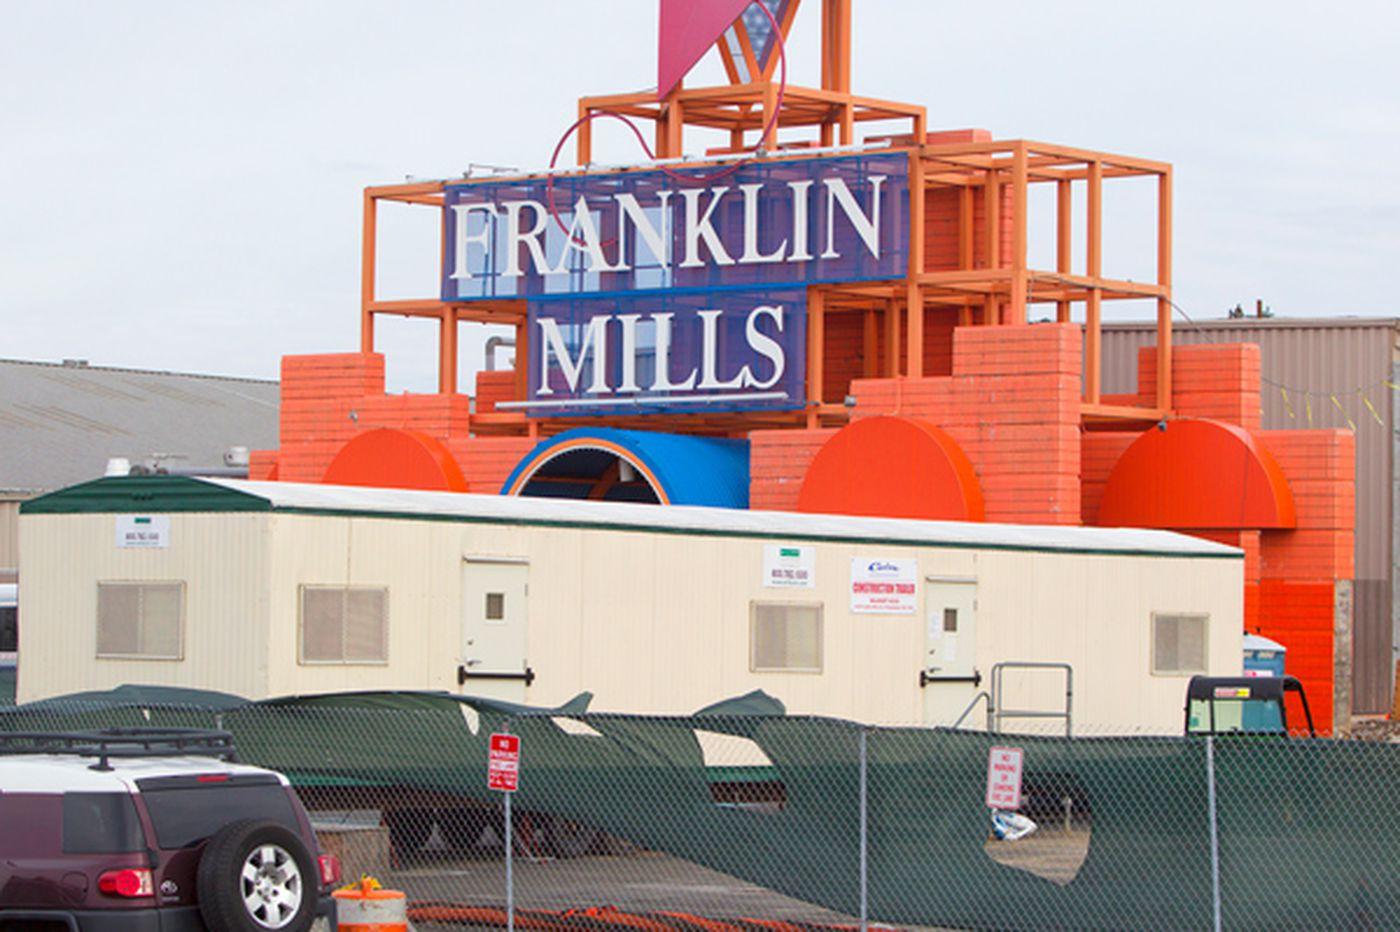 Franklin Mills reinvents itself as a more conventional mall